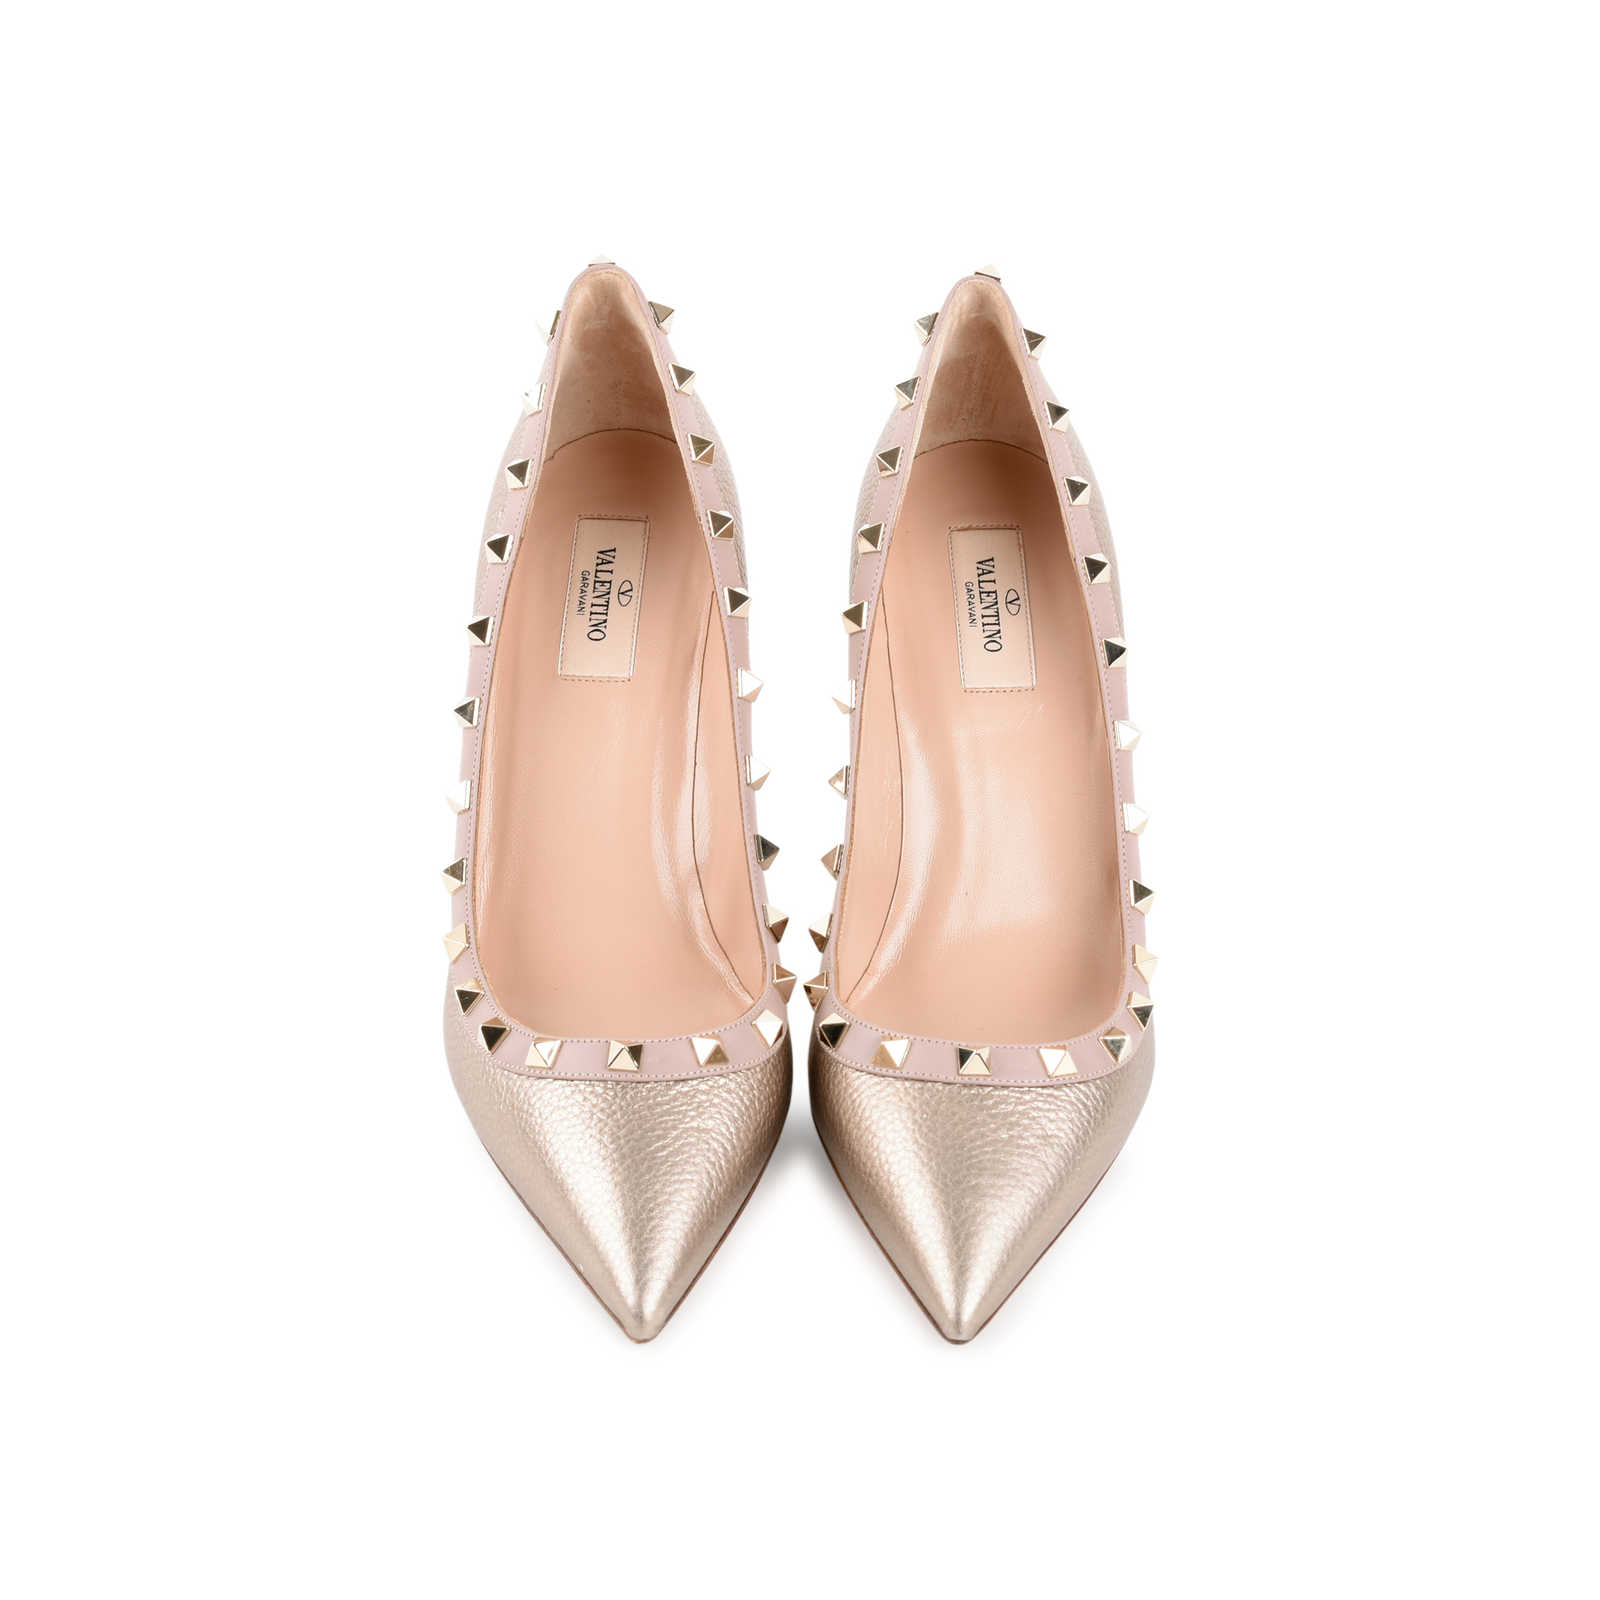 4ffb31e15 Authentic Second Hand Valentino Rockstud Pumps (PSS-470-00001) - Thumbnail  0 ...